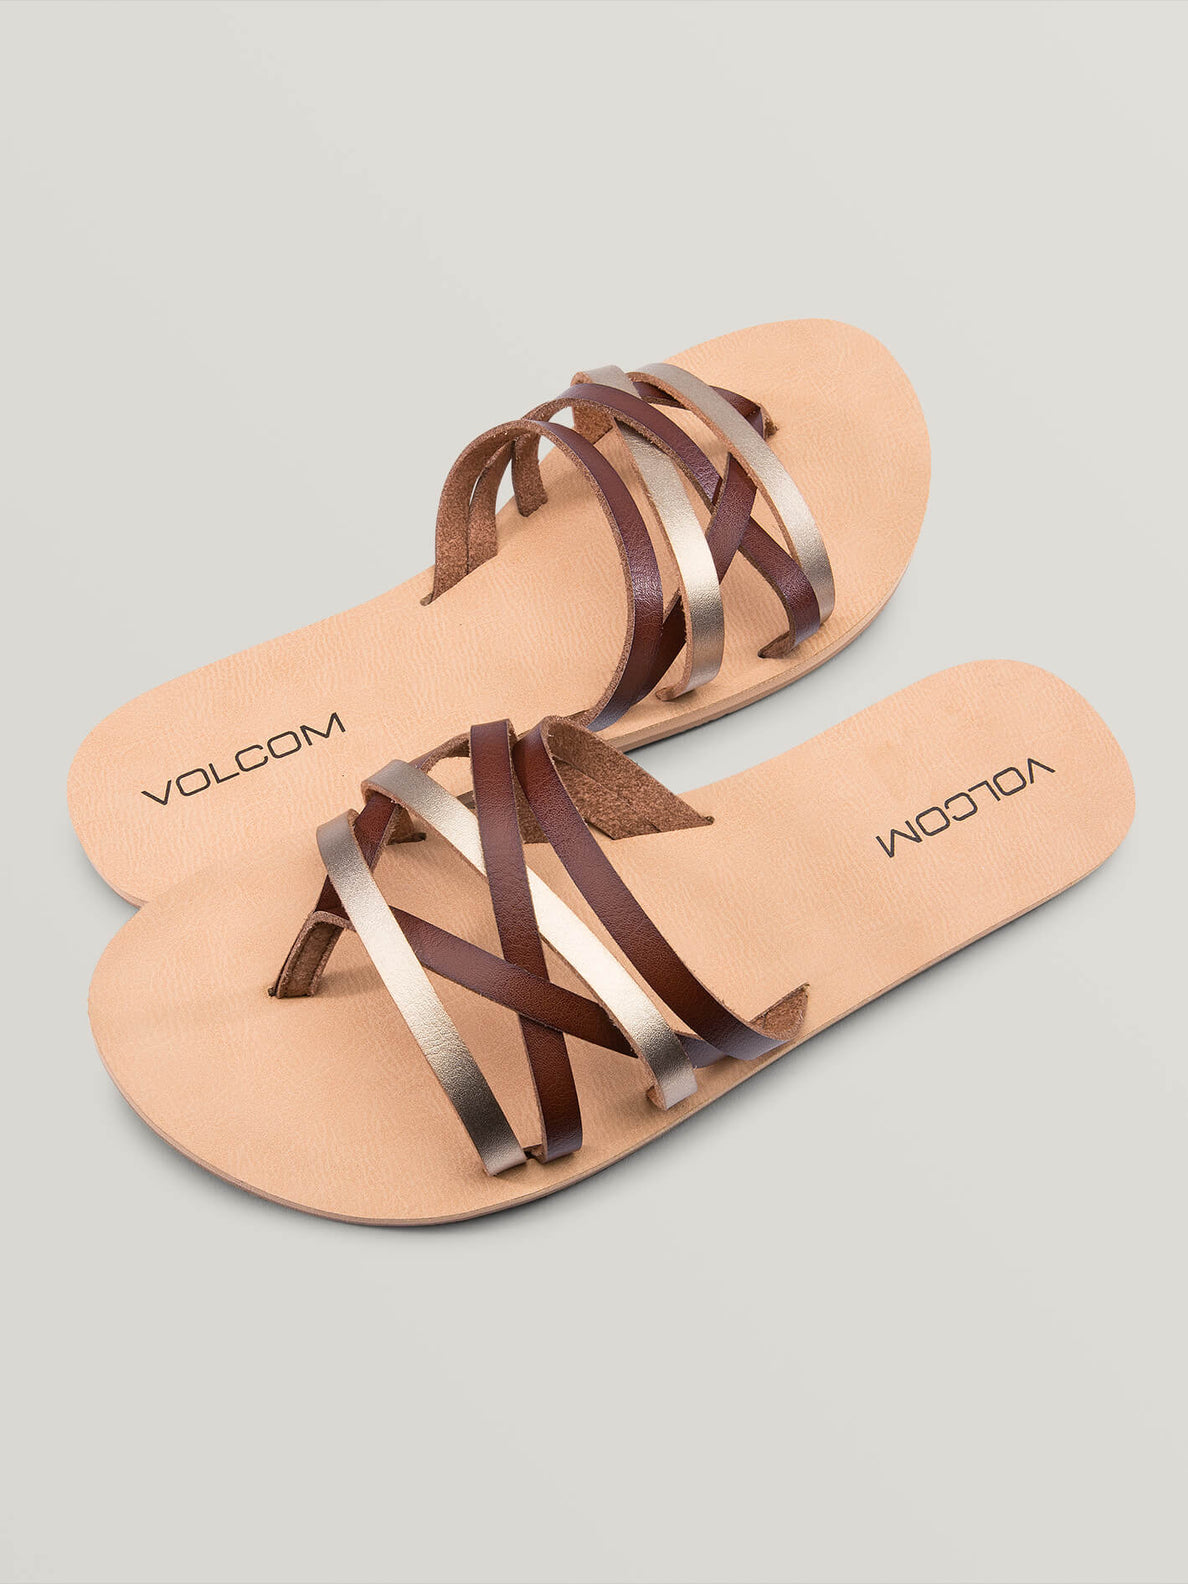 Legacy Sandals In Copper, Front View